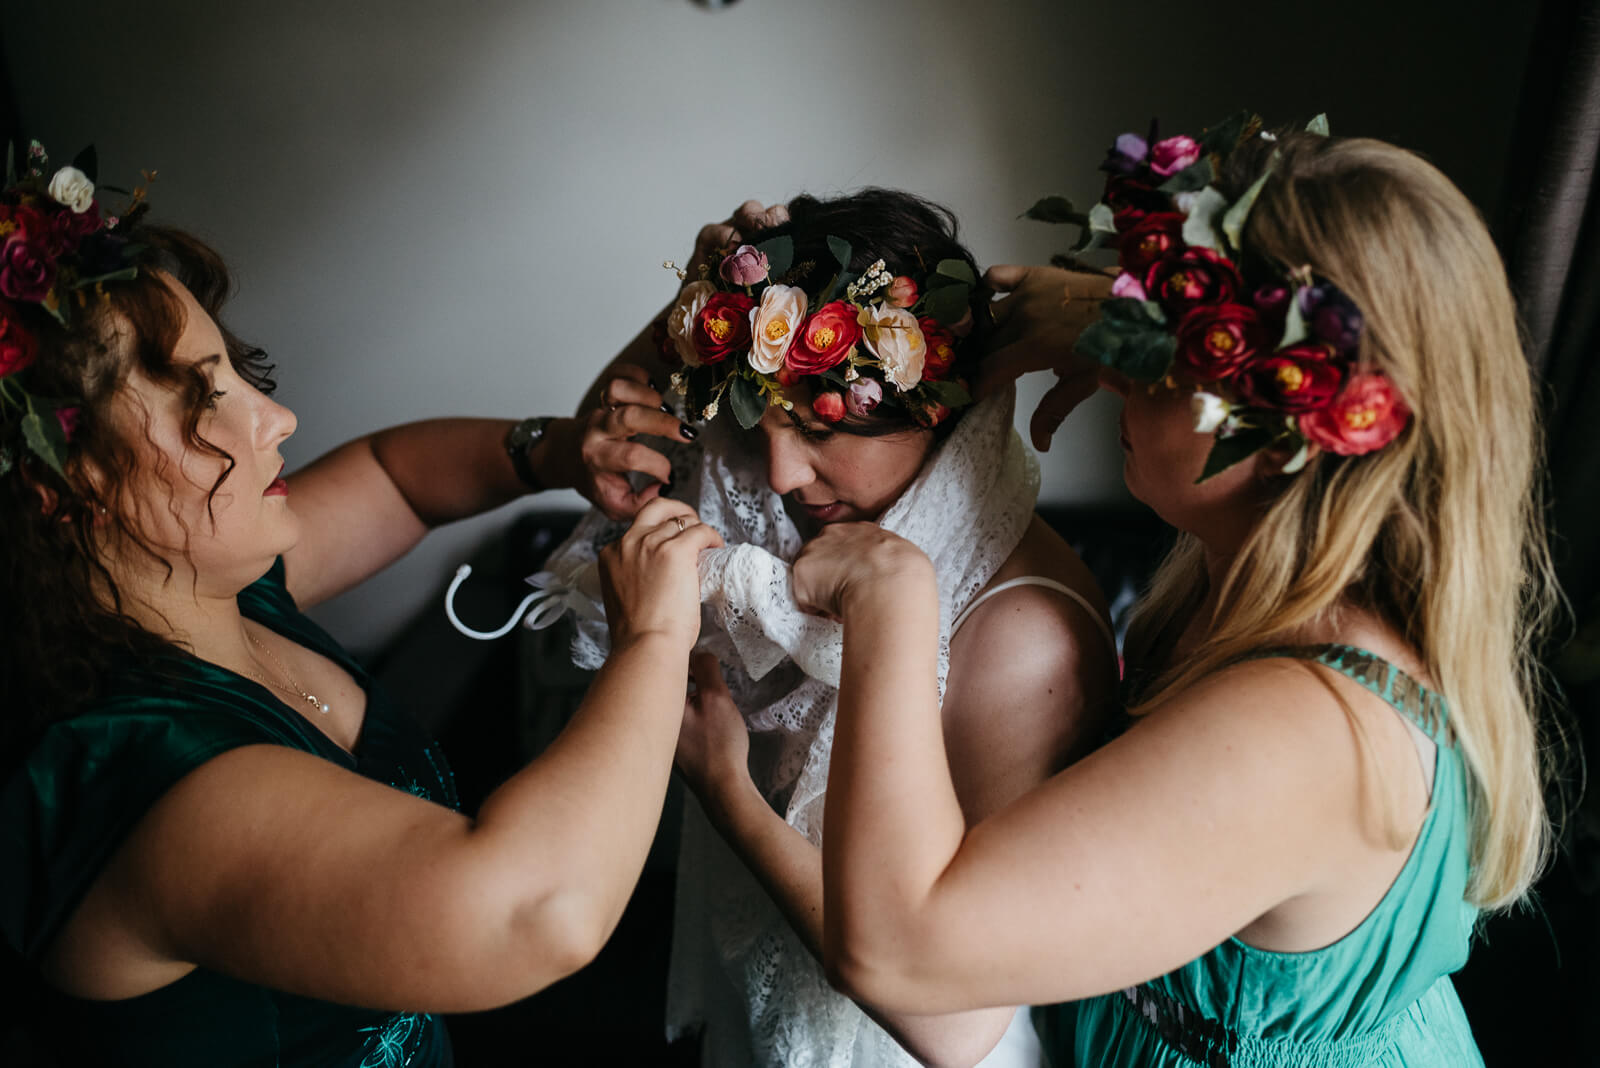 boho bride putting on her lace wedding dress while wearing a red and whit floral crown